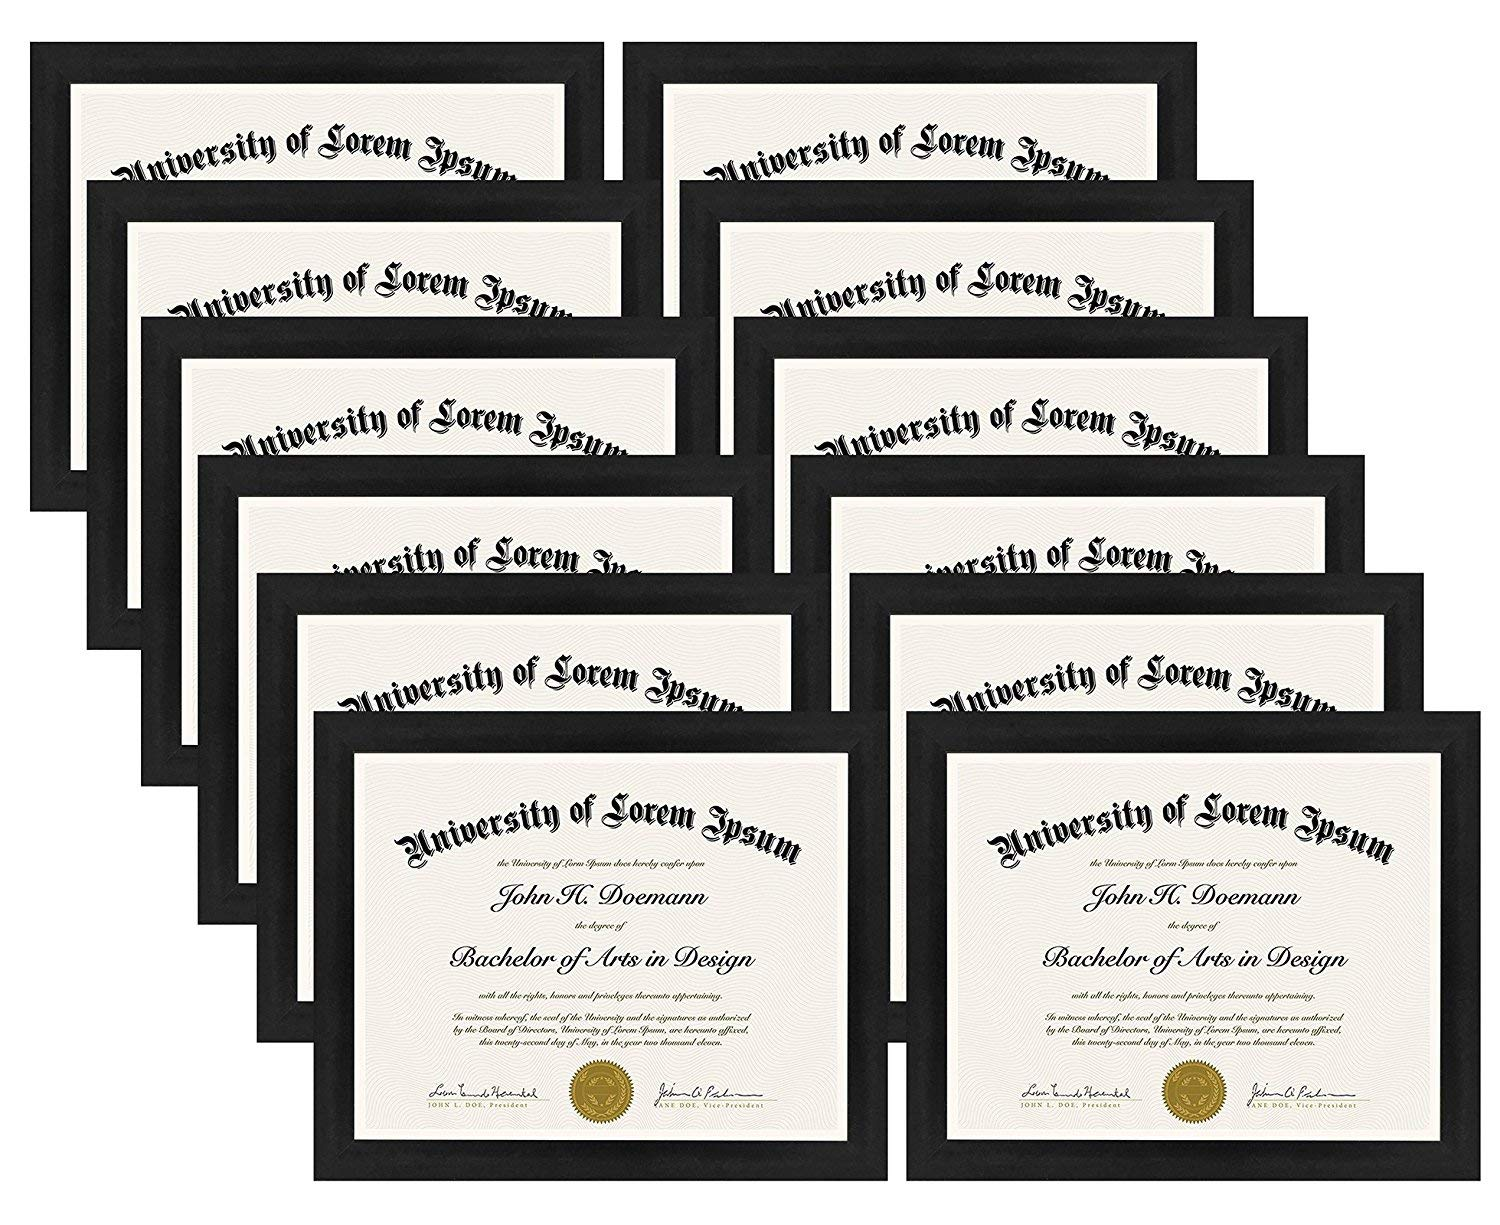 Hanging Hardware Included! Displays 8.5x11 Documents Americanflat 2 Pack Diploma Frames Shatter-Resistant Glass